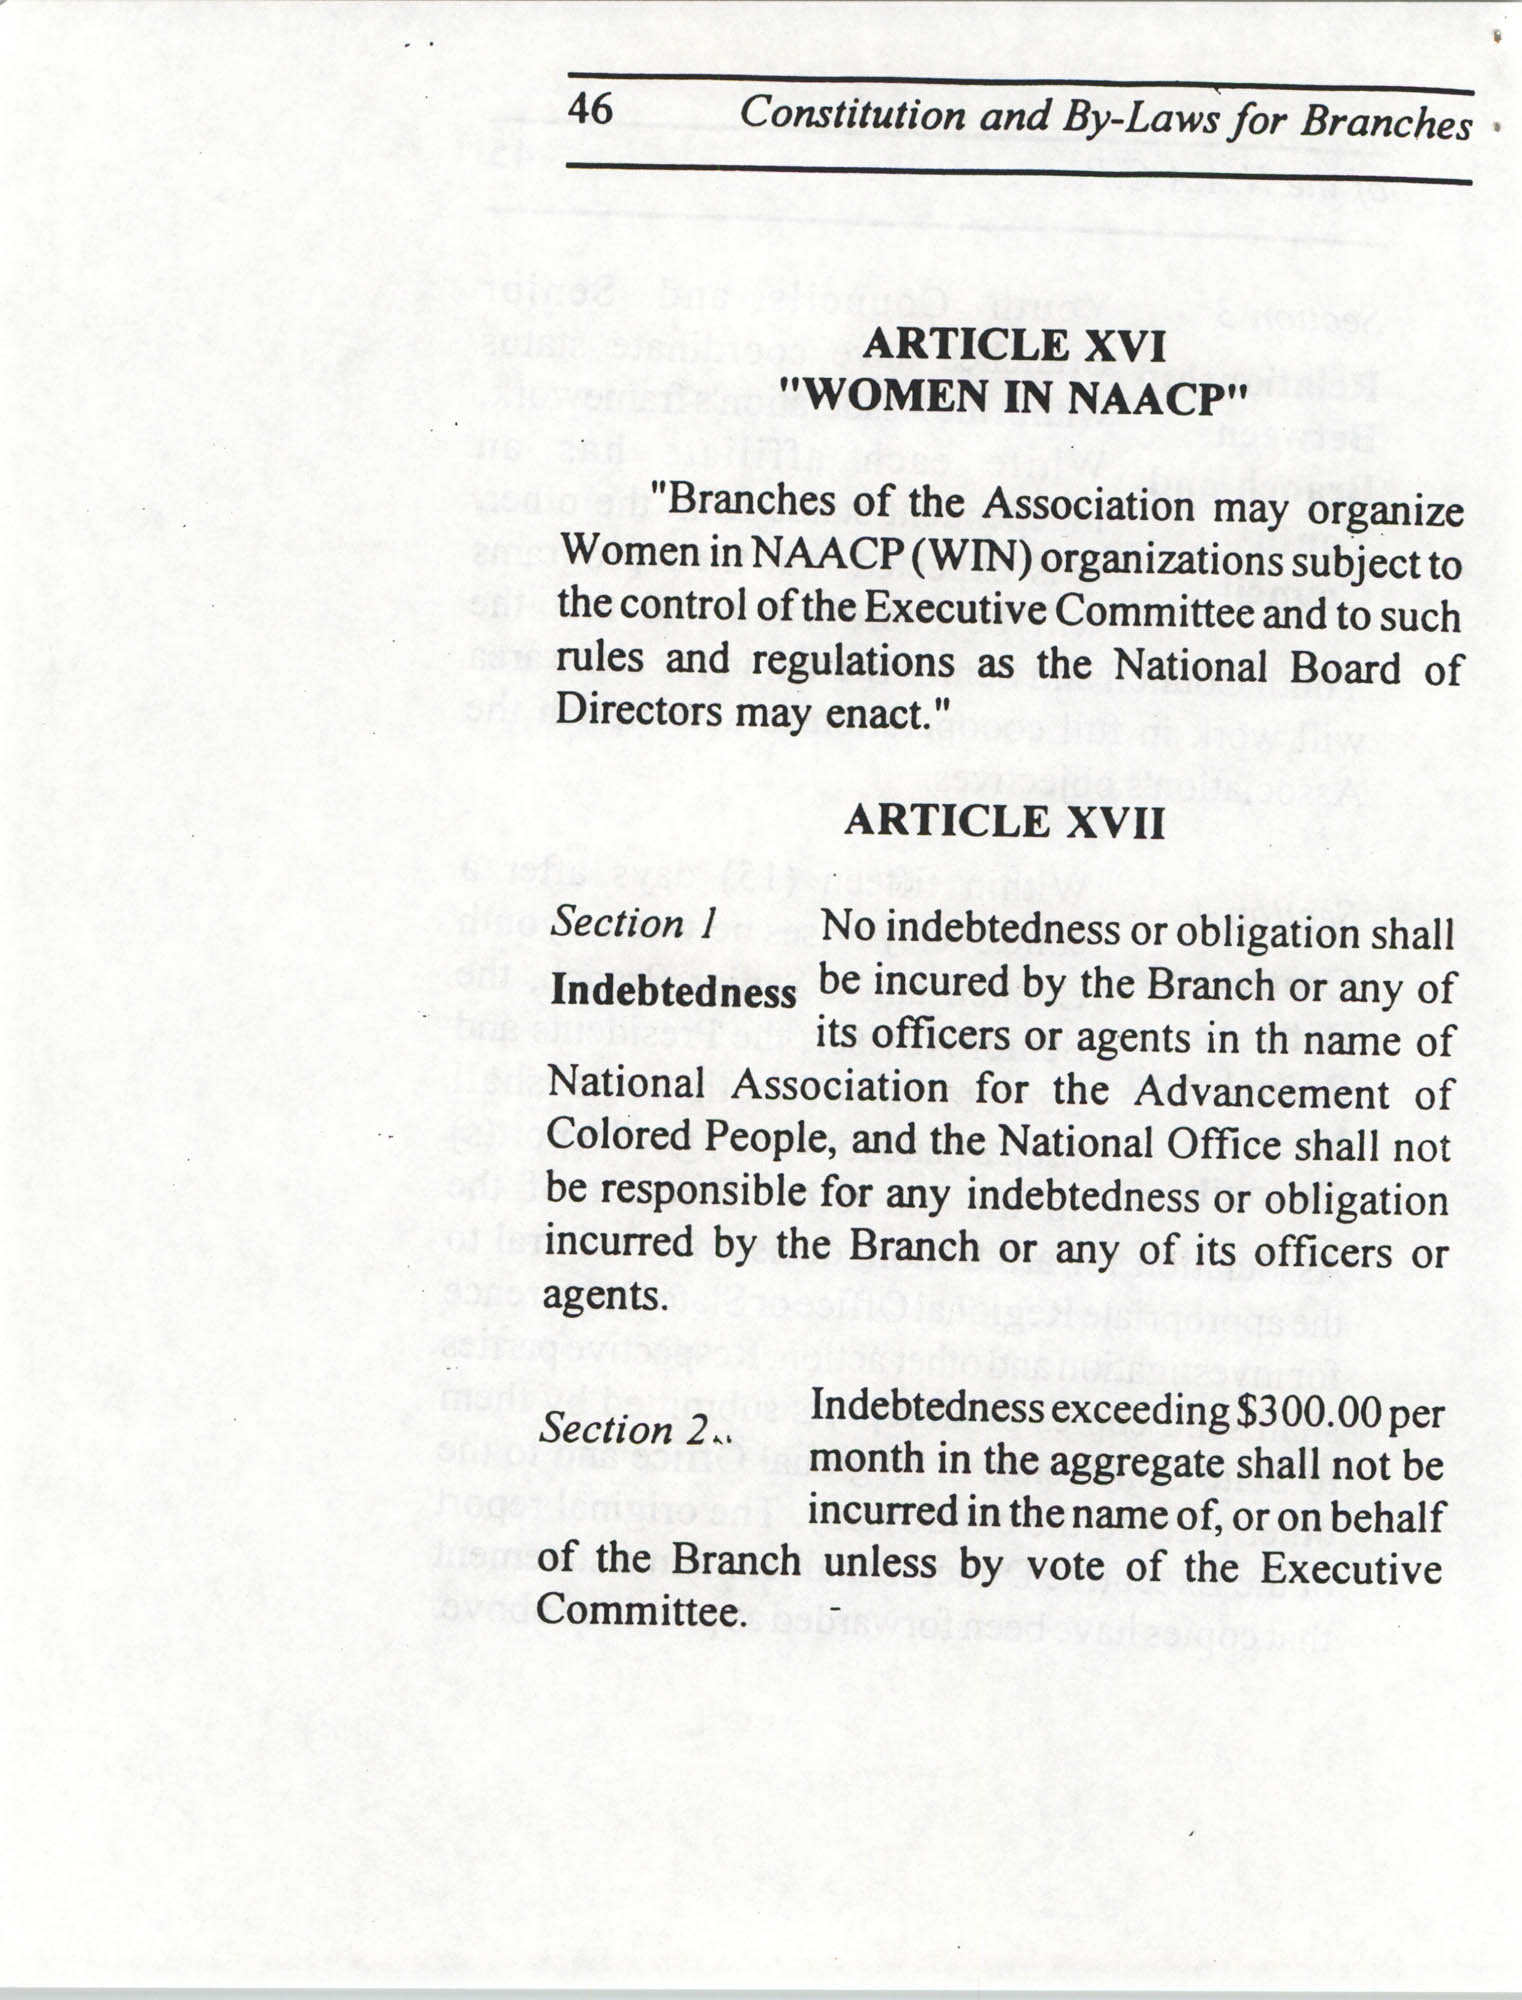 Constitution and By-Laws for Branches of the NAACP, July 1994, Page 46